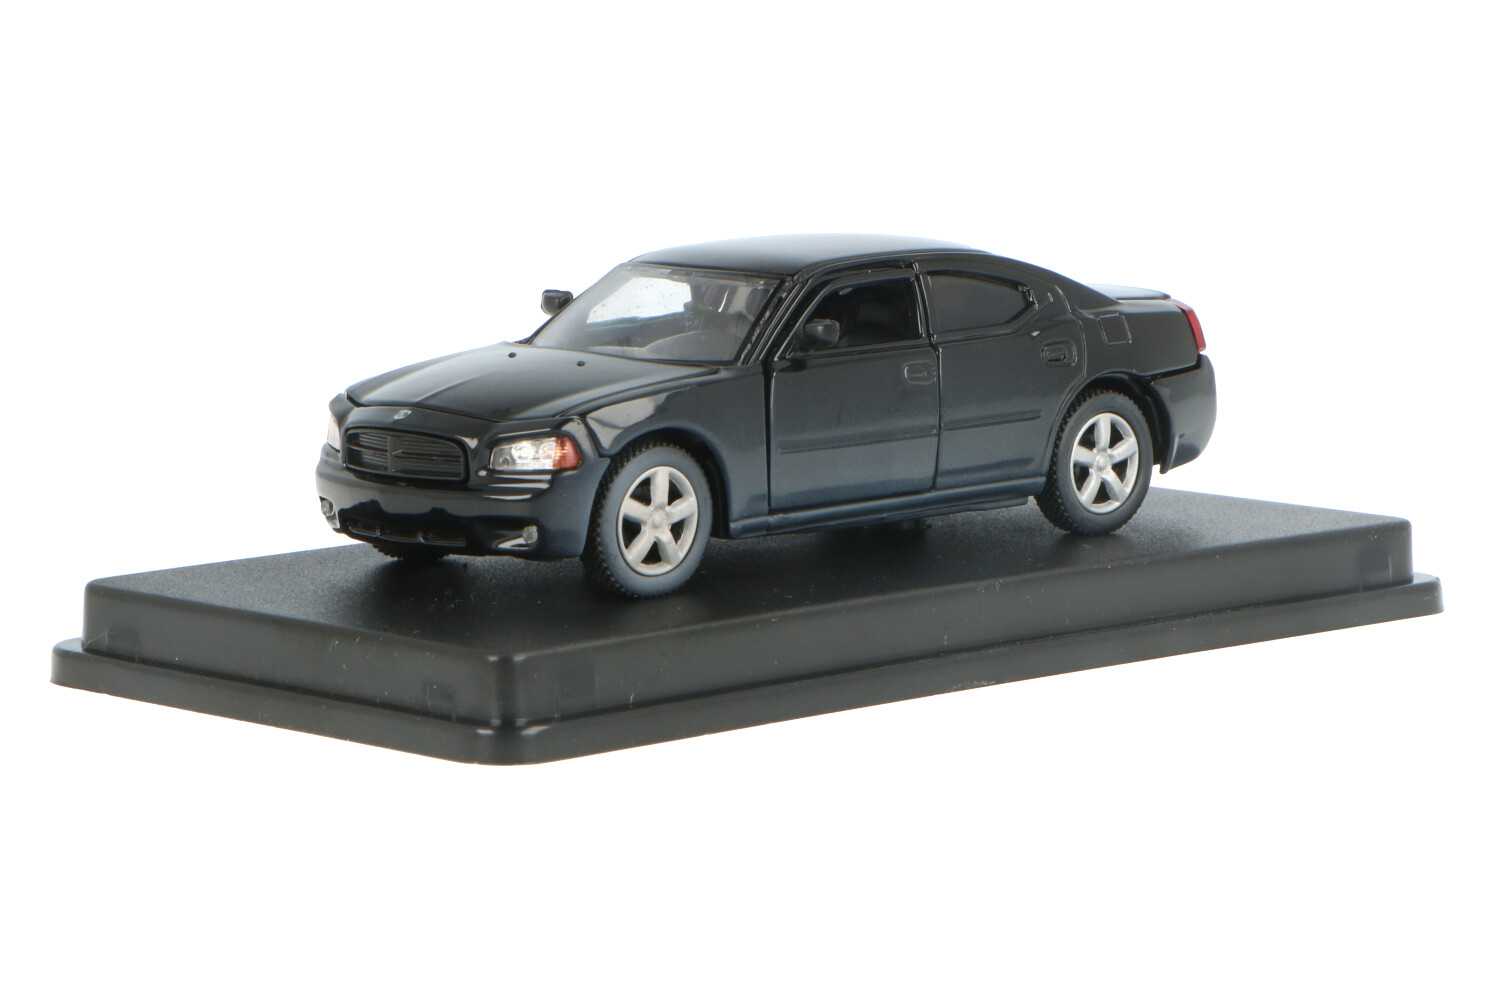 Dodge Charger Police - Modelauto schaal 1:43